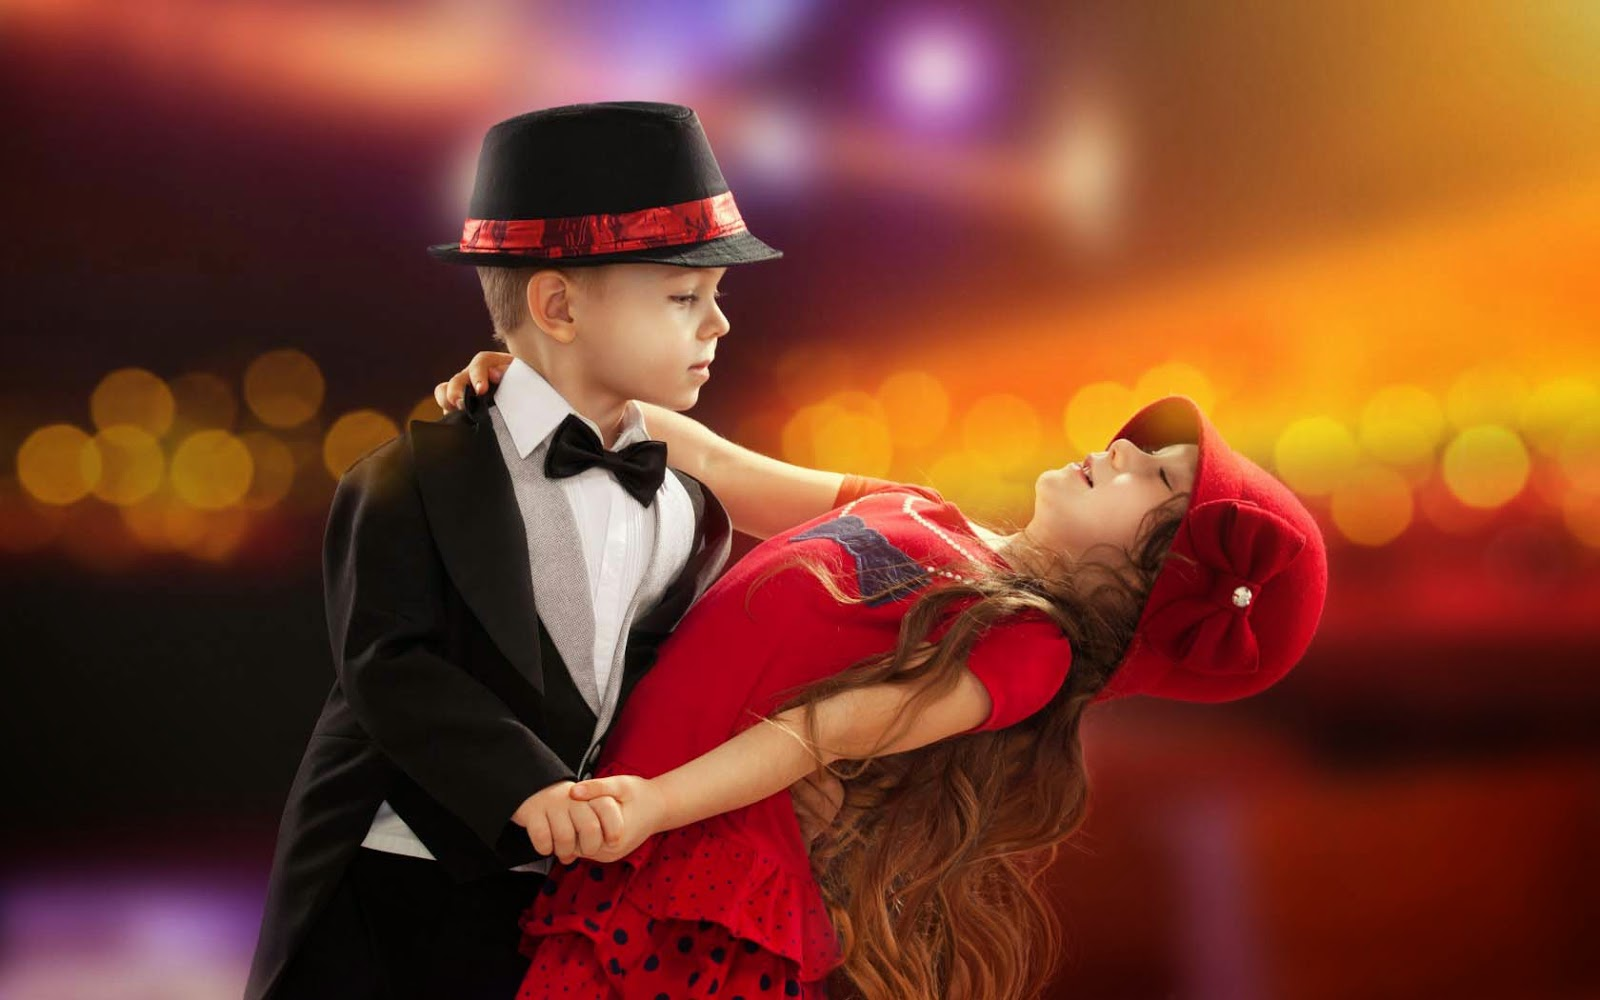 Cute Child Couple Wallpapers : Find best latest Cute Child Couple